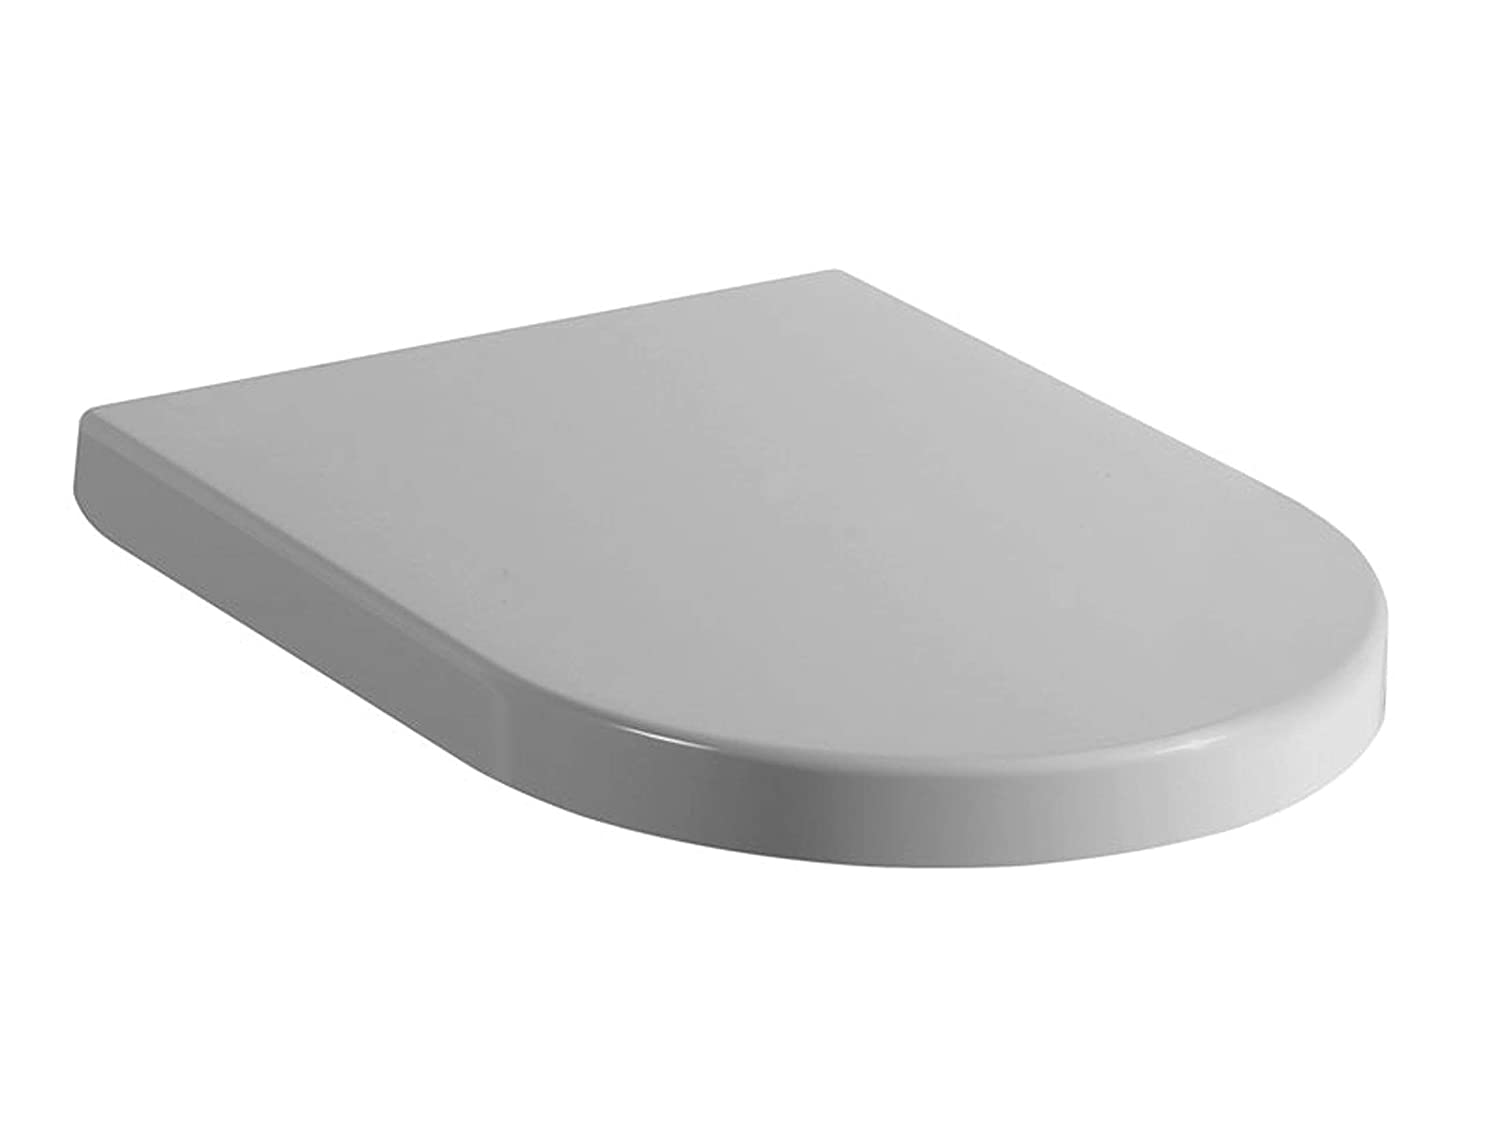 Toilet seat designed to fit Duravit happy D standard pans with pan seat hole centres of 180-220mm. Soft close quick release. Manufactured from anti bac urea plastics. by Gush Bathroom Products